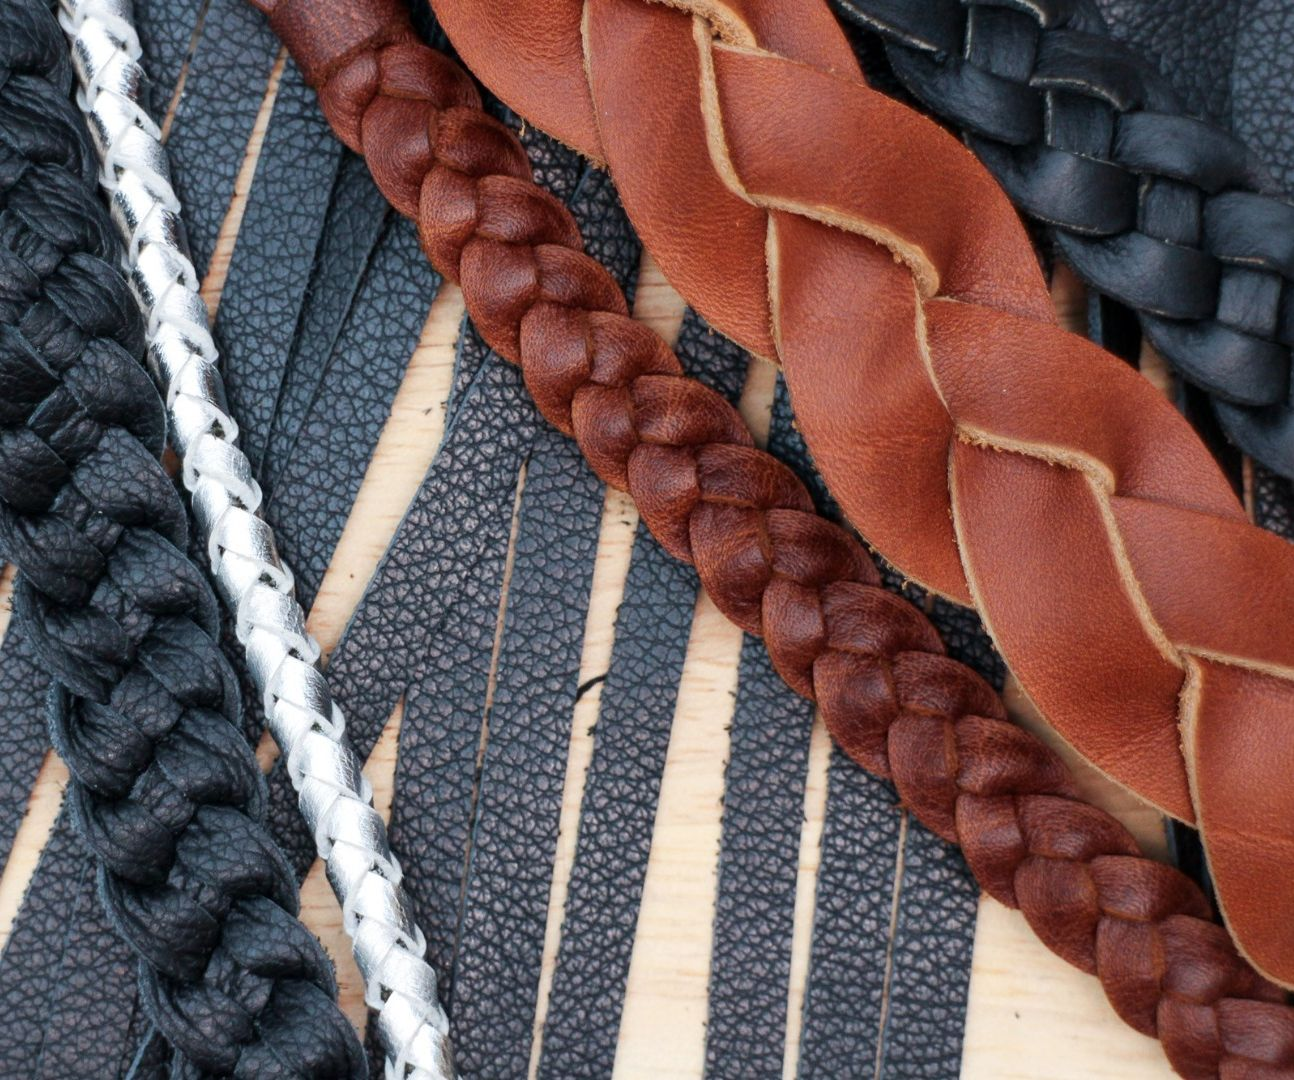 Making Leather Braids